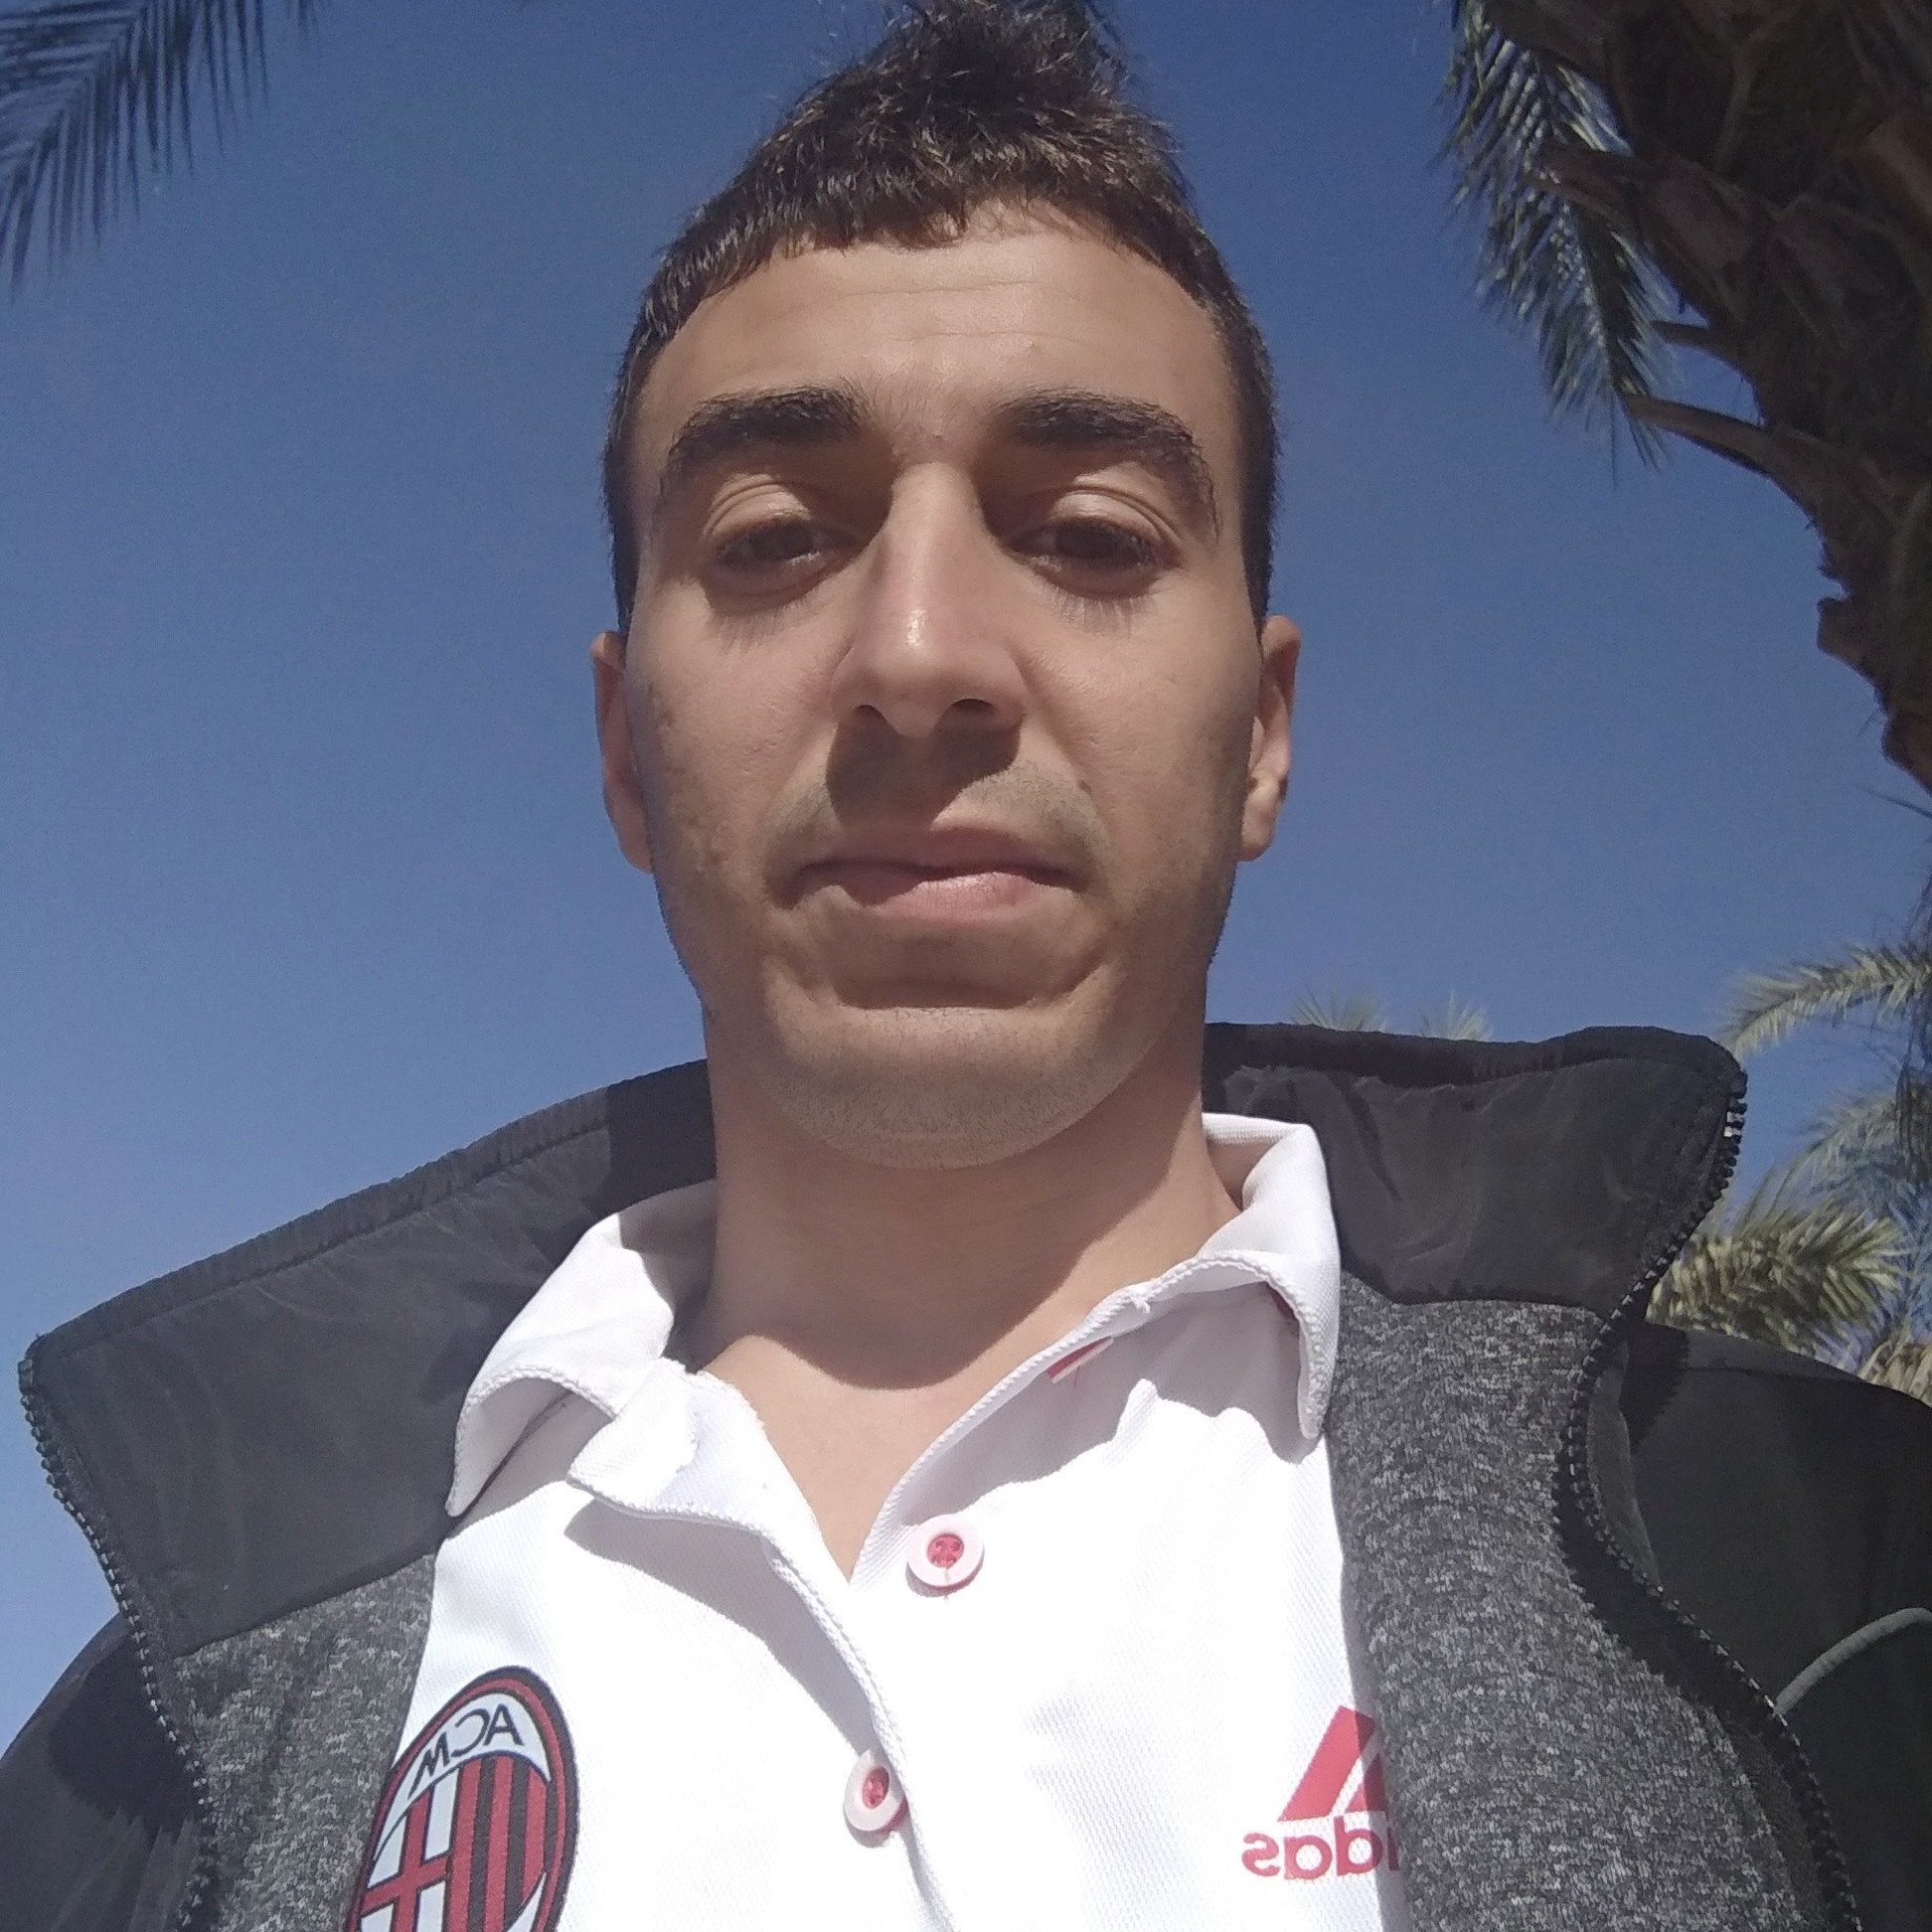 REDOUANE HELLAL's profile picture